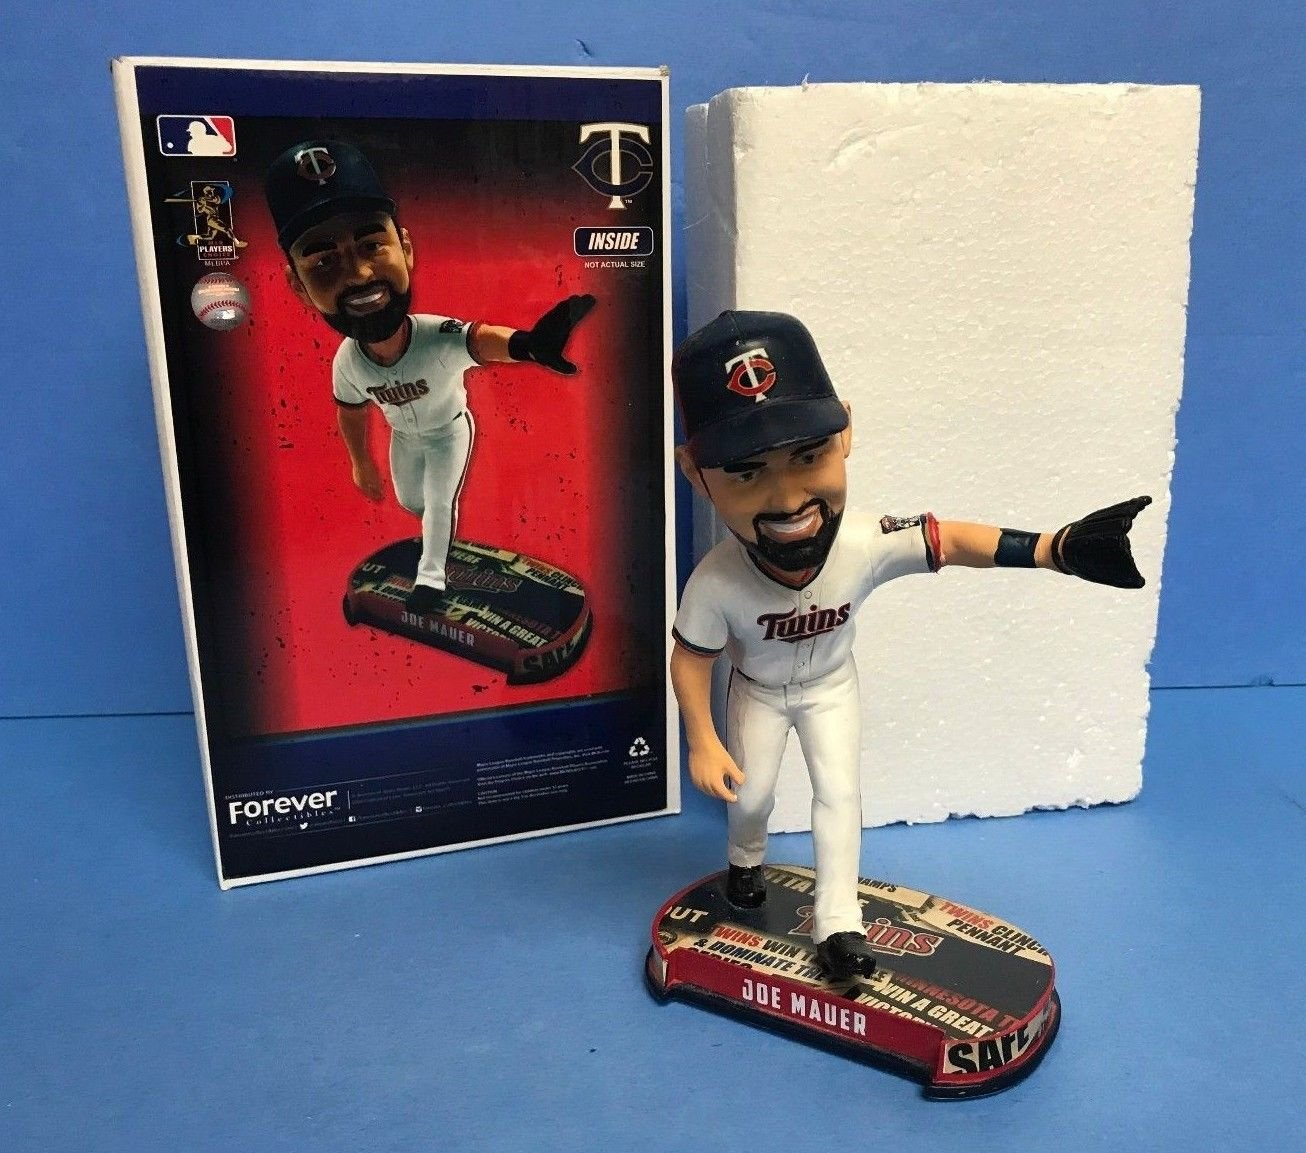 Joe Mauer 2017 Minnesota Twins Limited Edition Bobble Bobblehead